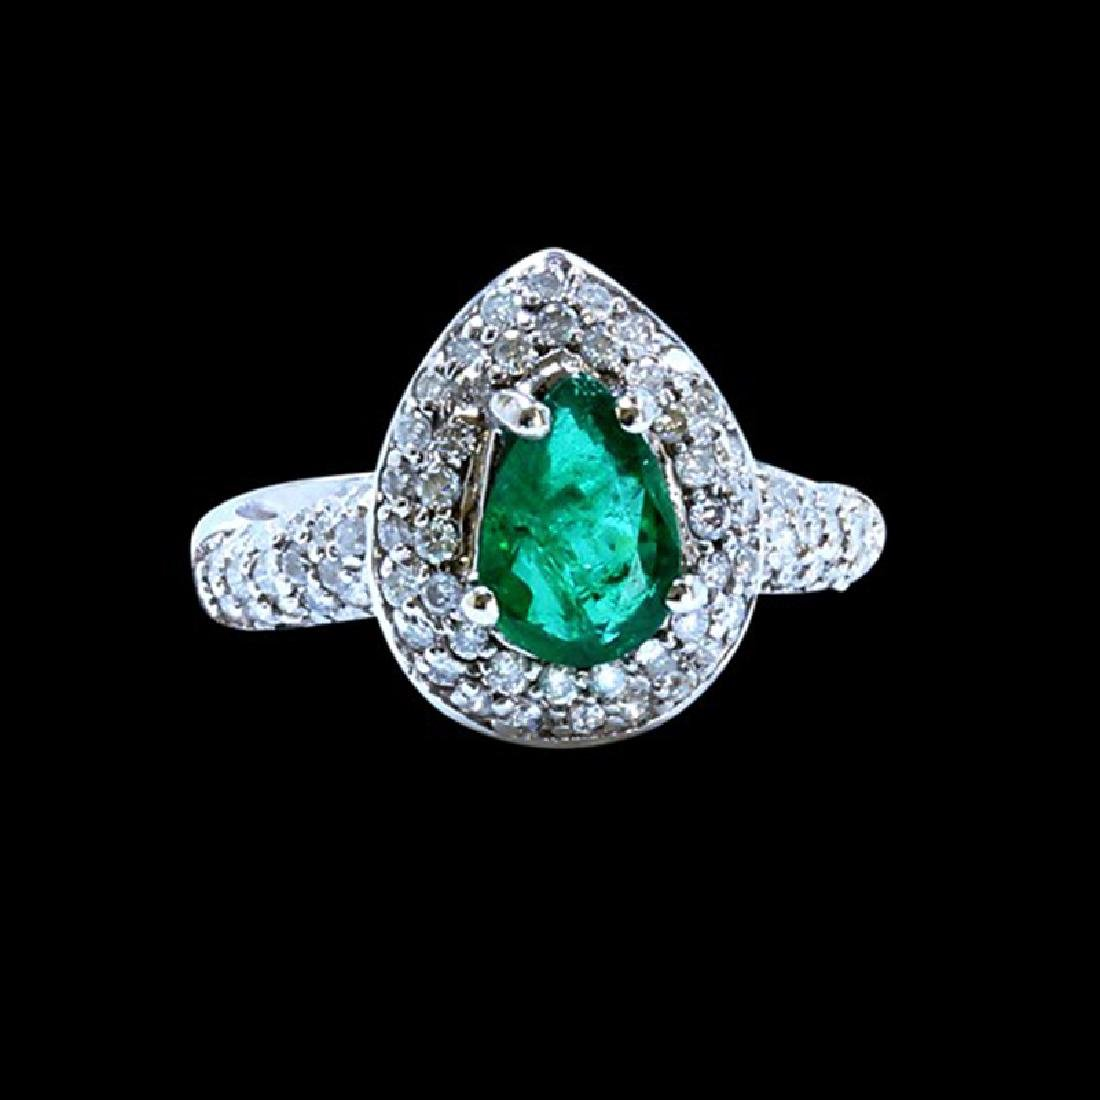 1.10CT NATURAL COLOMBIAN EMERALD 18K WHITE GOLD RING